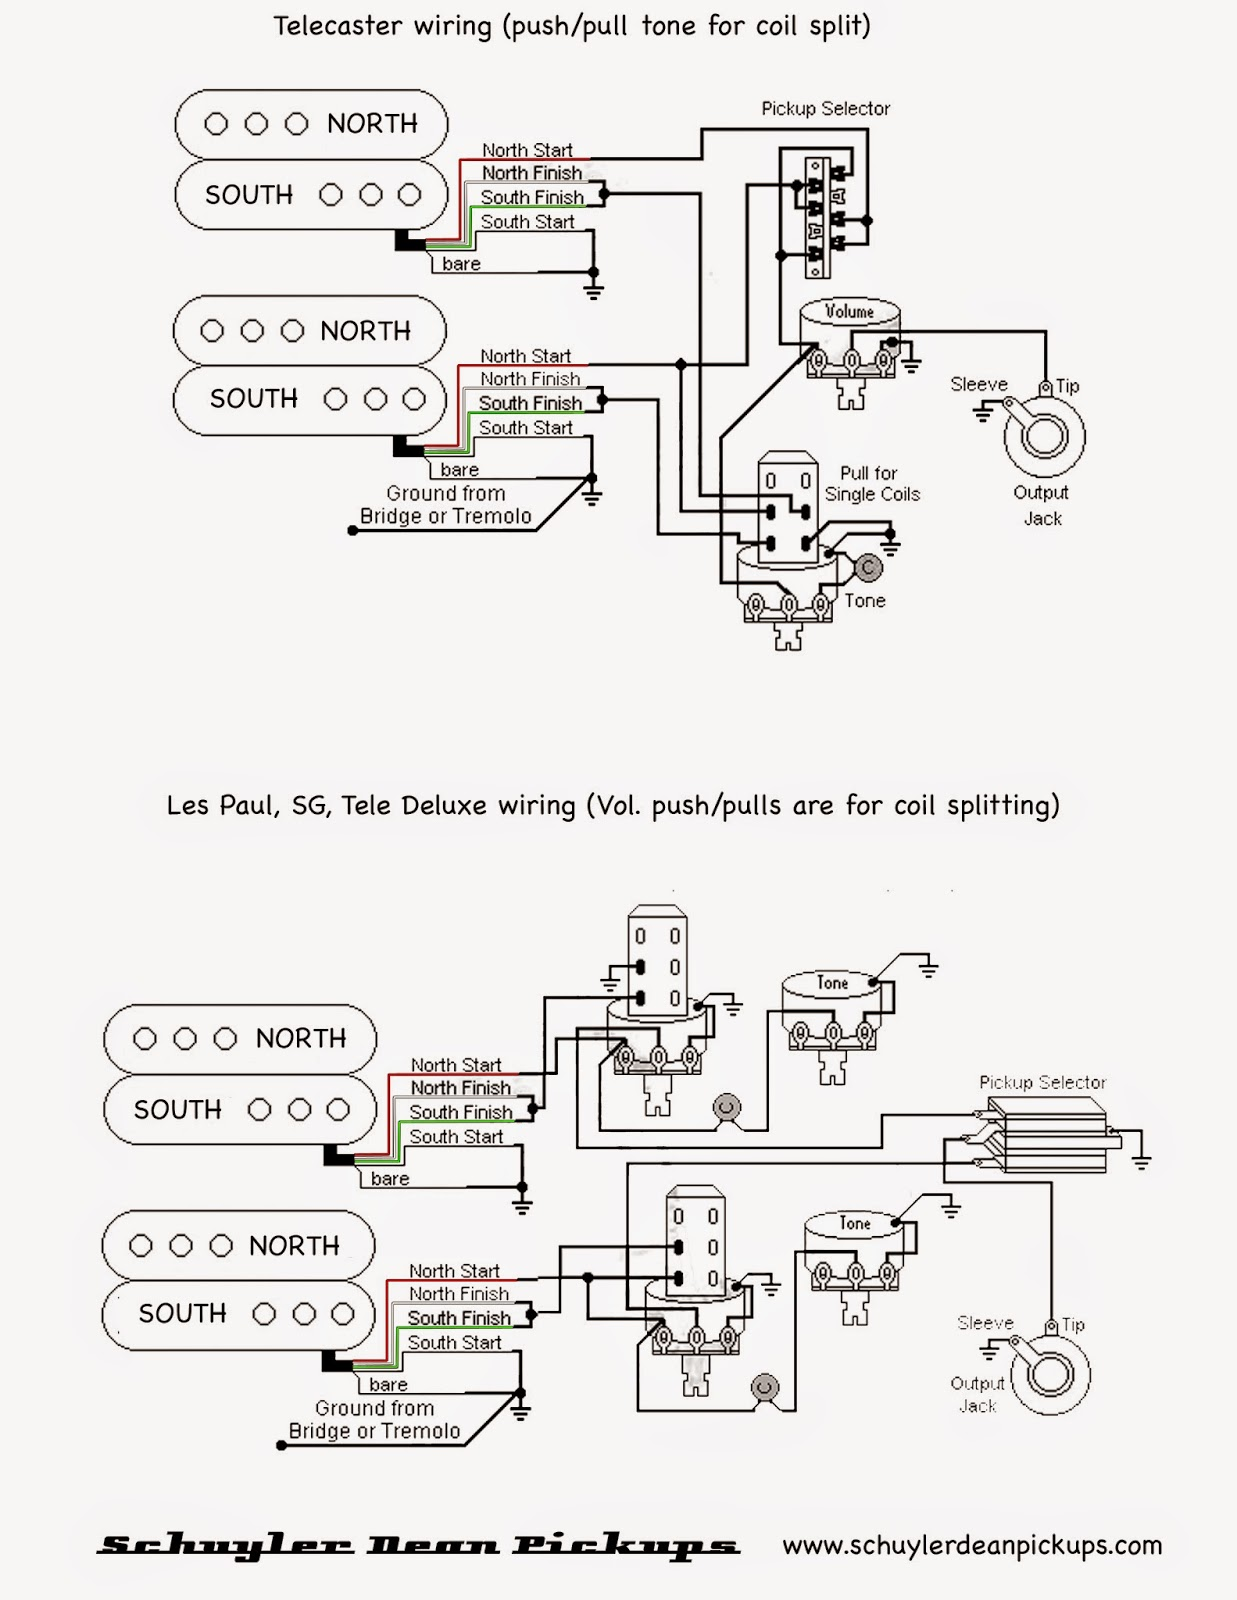 Wiring%2Bdiagram%2BTele LP schuyler dean pickups 2014 les paul coil tap wiring diagram at fashall.co